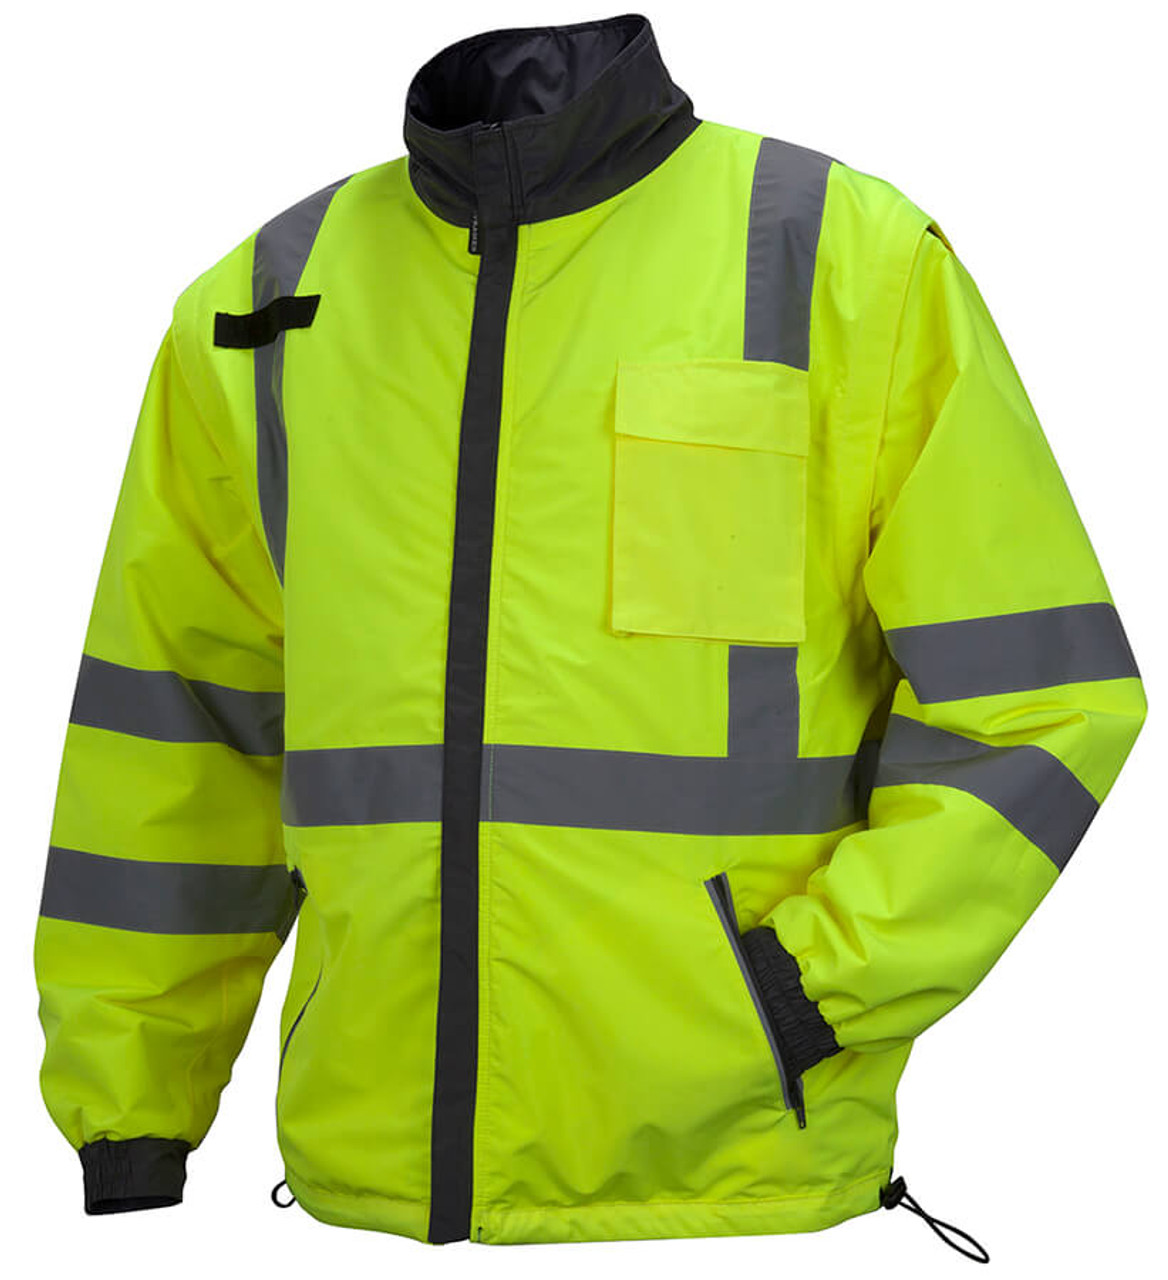 5789f93f127 Pyramex RJR34 Class 3 Safety Jacket - Free Shipping